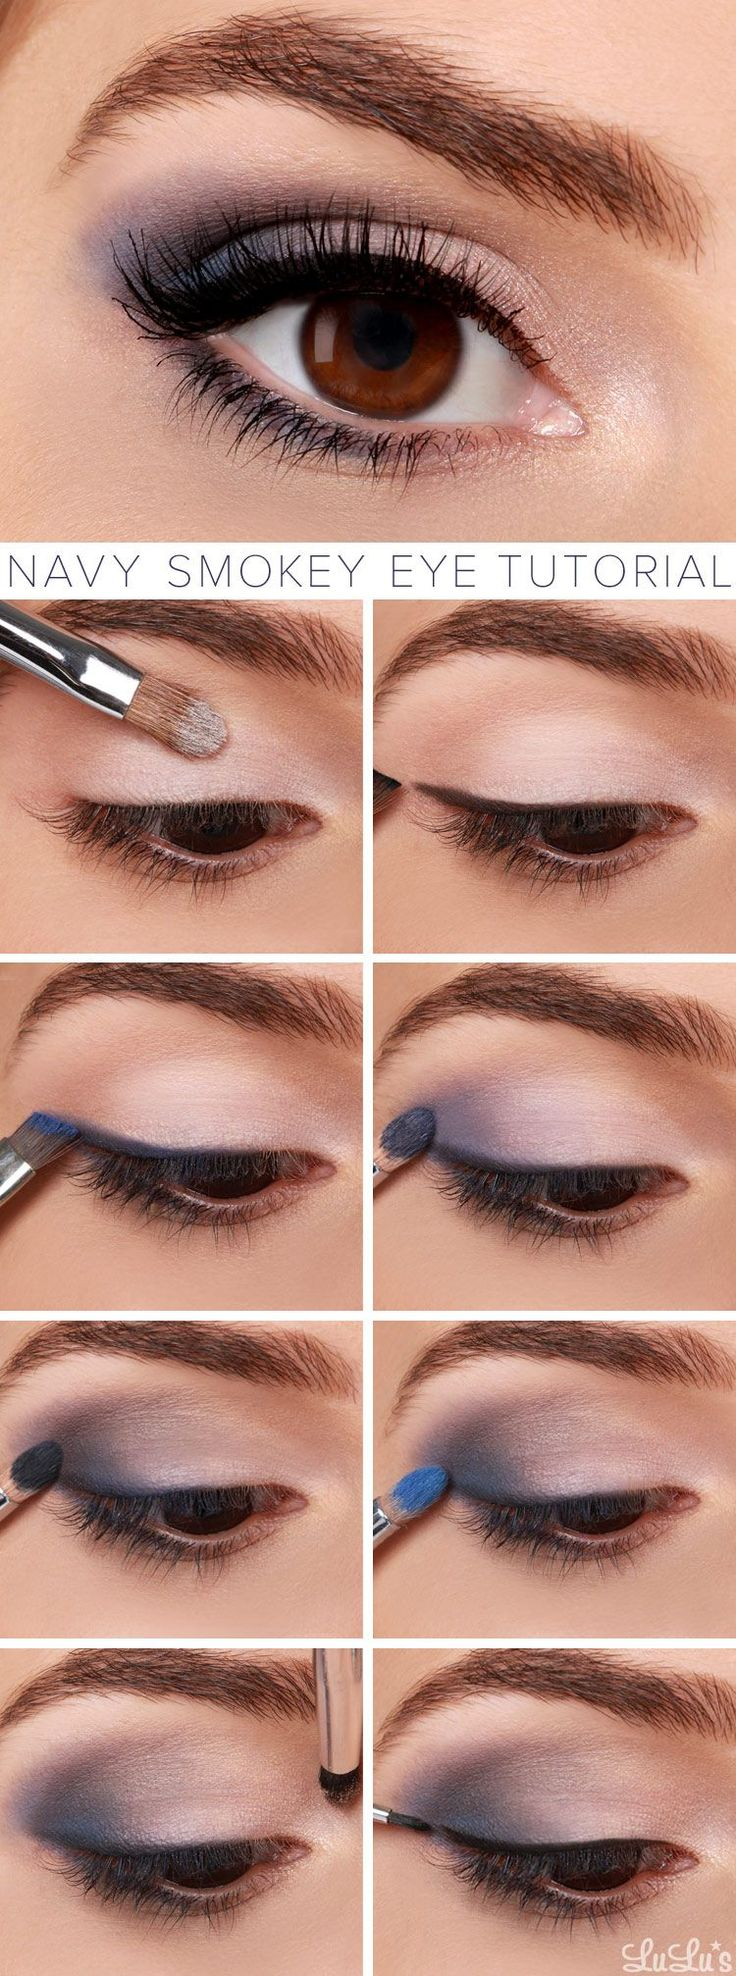 Navy Smokey Eye Makeup Tutorial - Where to buy Real Techniques brushes -$10 http://www.screencast.com/users/samanjoin/folders/Default/media/27faffd0-6bd5-41fc-8dae-64cd8d06a360 #makeup #makeupbrushes #realtechniques #realtechniquesbrushes #makeupeye #makeupeyes #eyemakeup